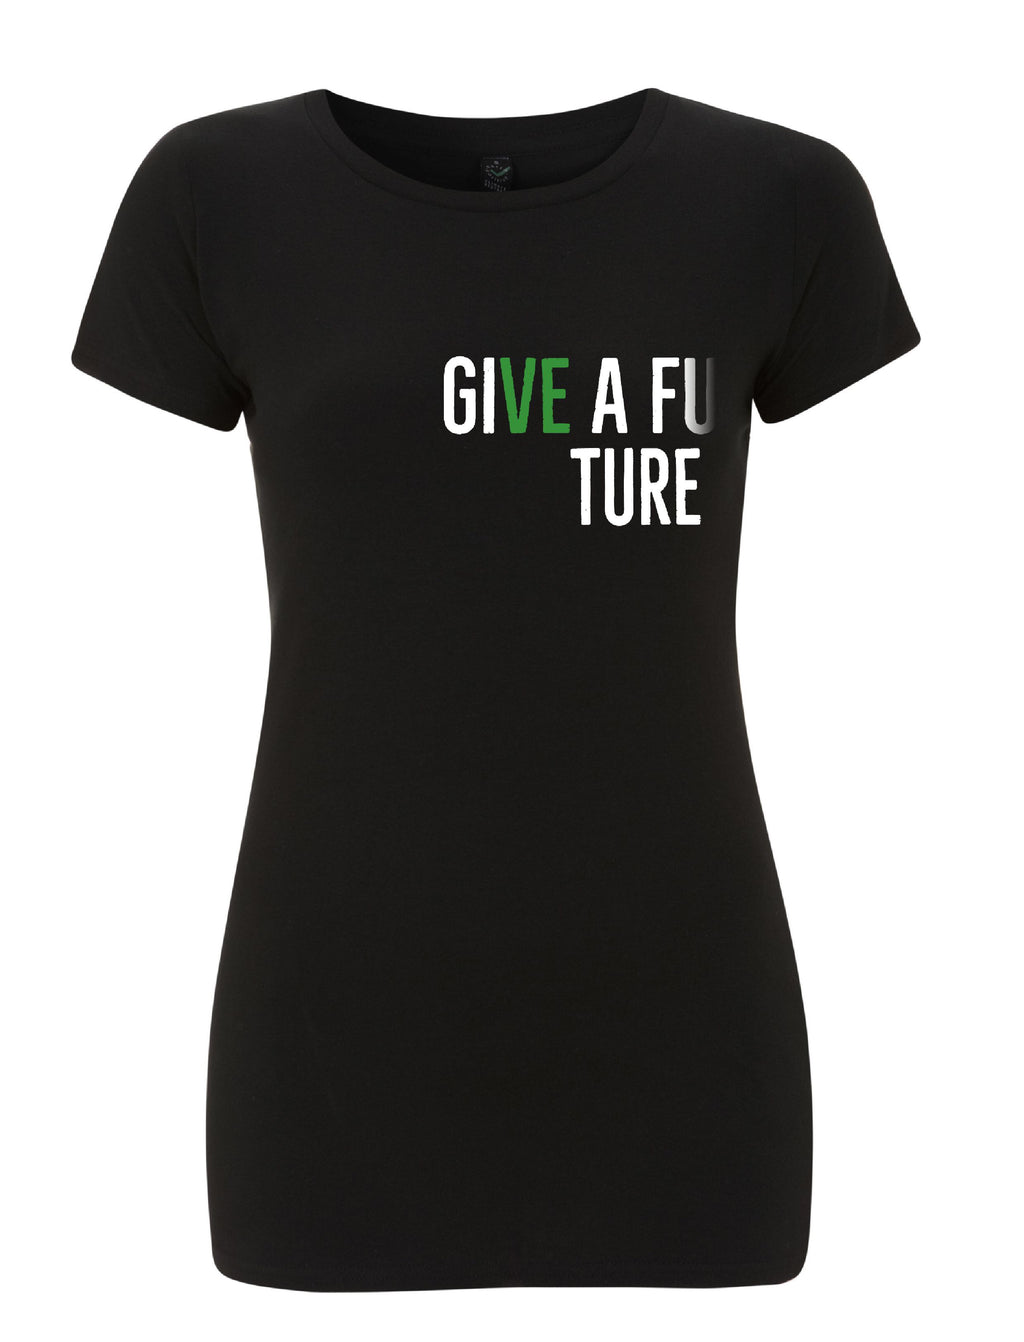 GIVE A FUTURE Women's Slim Fit Organic Cotton T-shirt